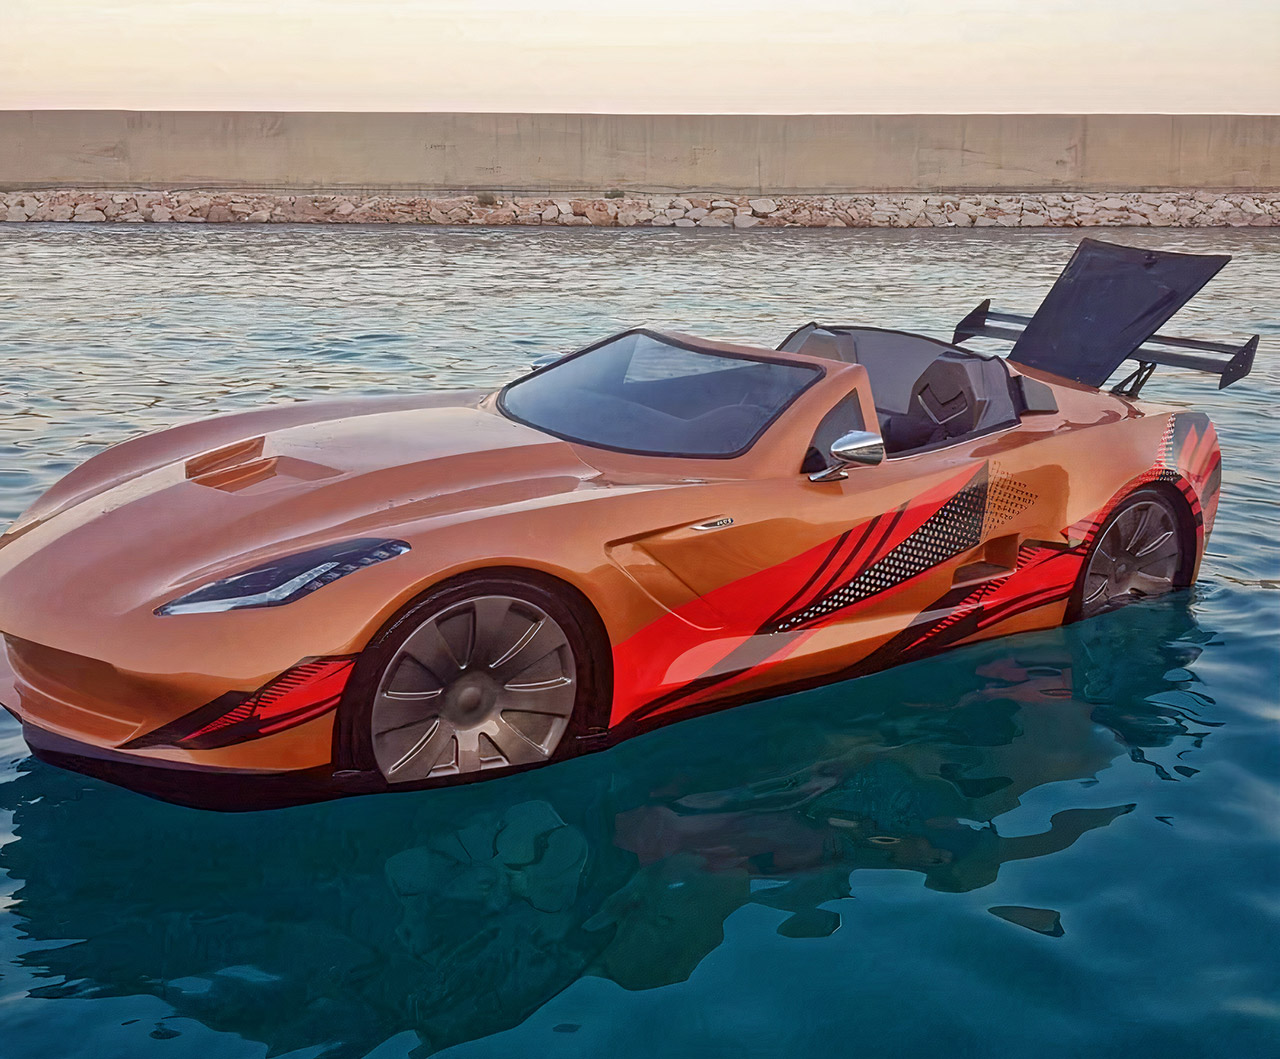 Chevy C7 Corvette Boat